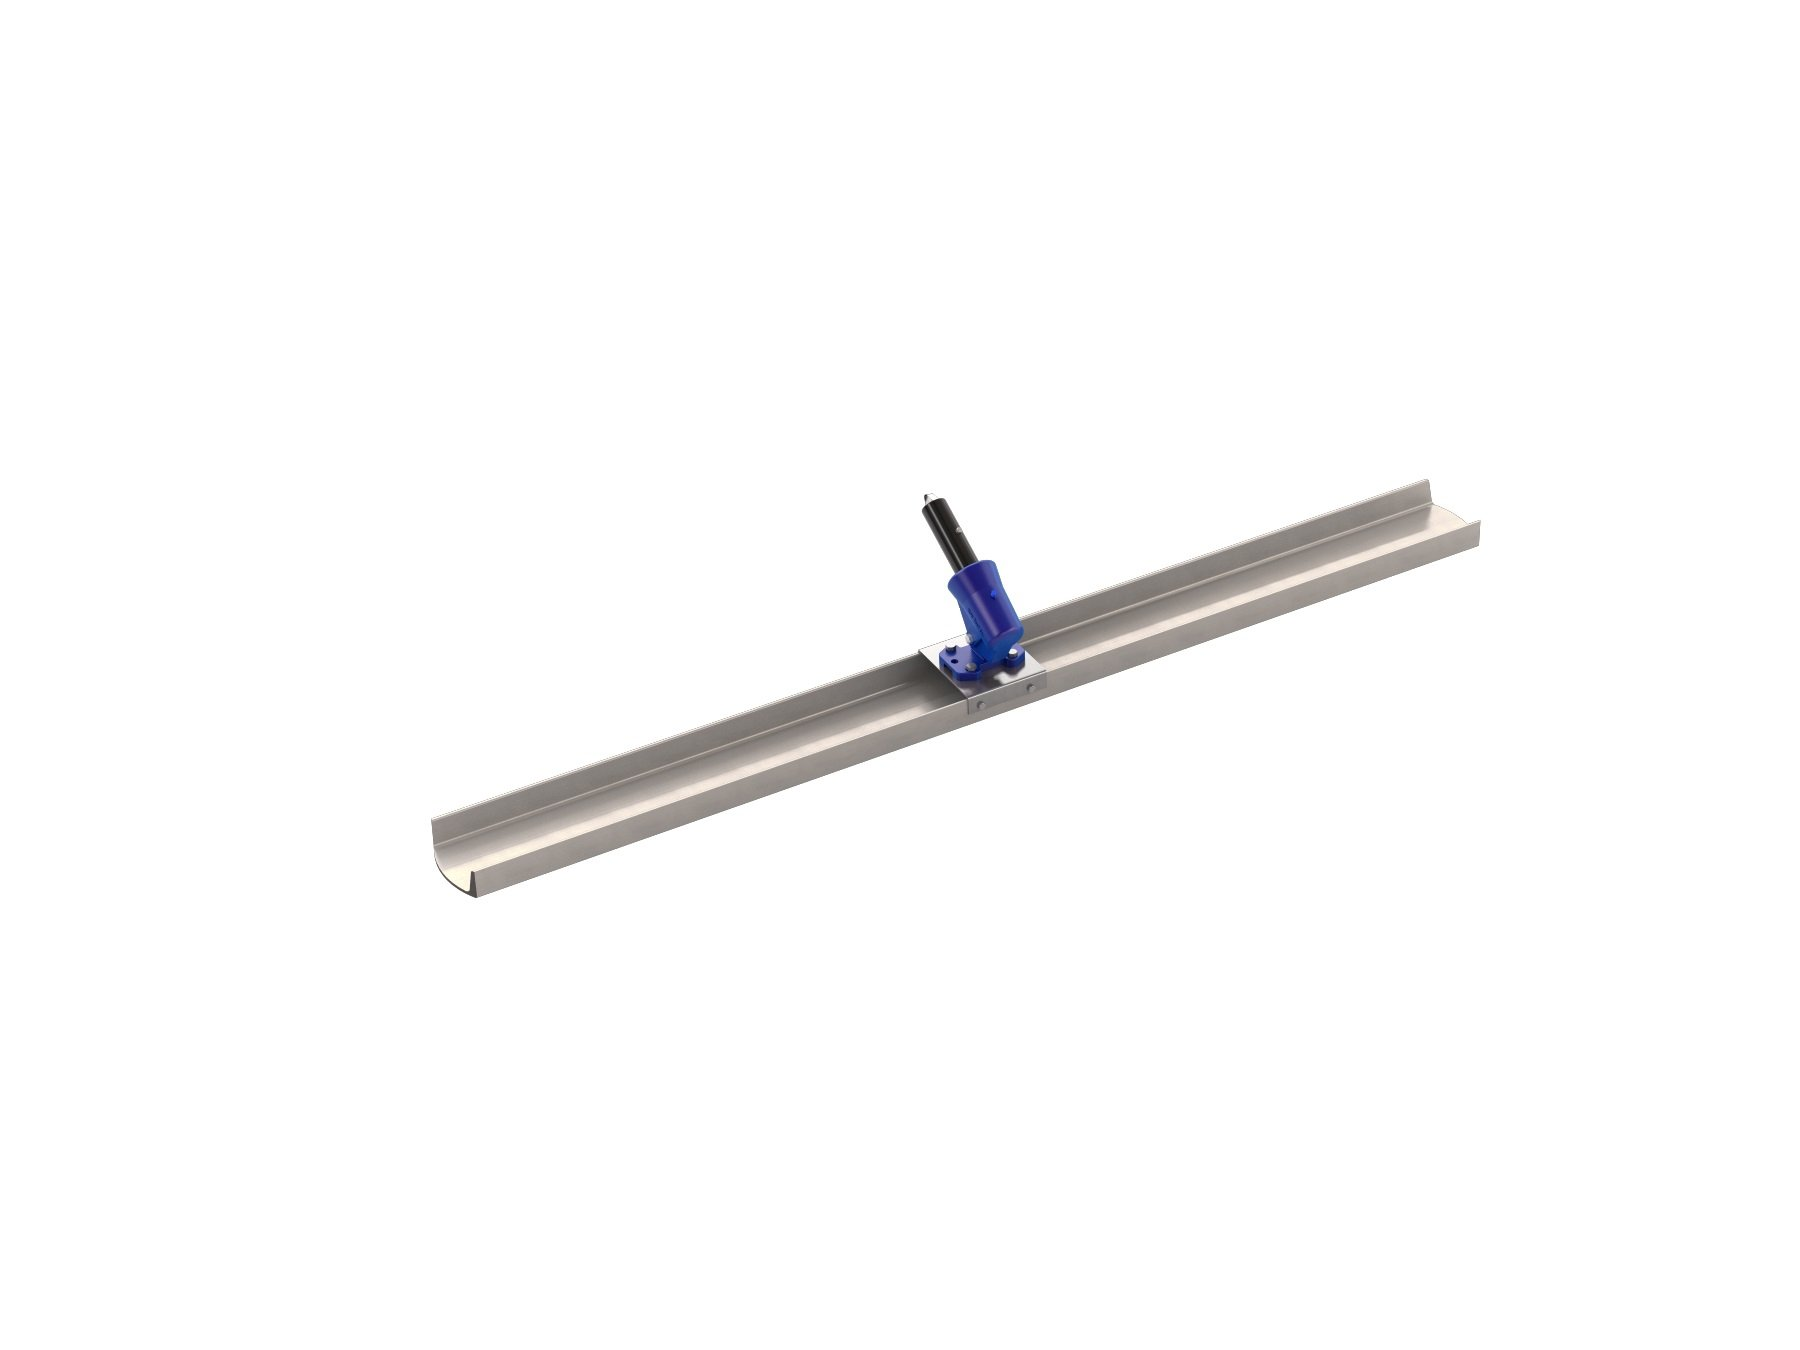 Bon 82-316 72-Inch by 6-Inch Round End Magnesium Channel Float with Wormgear Bracket